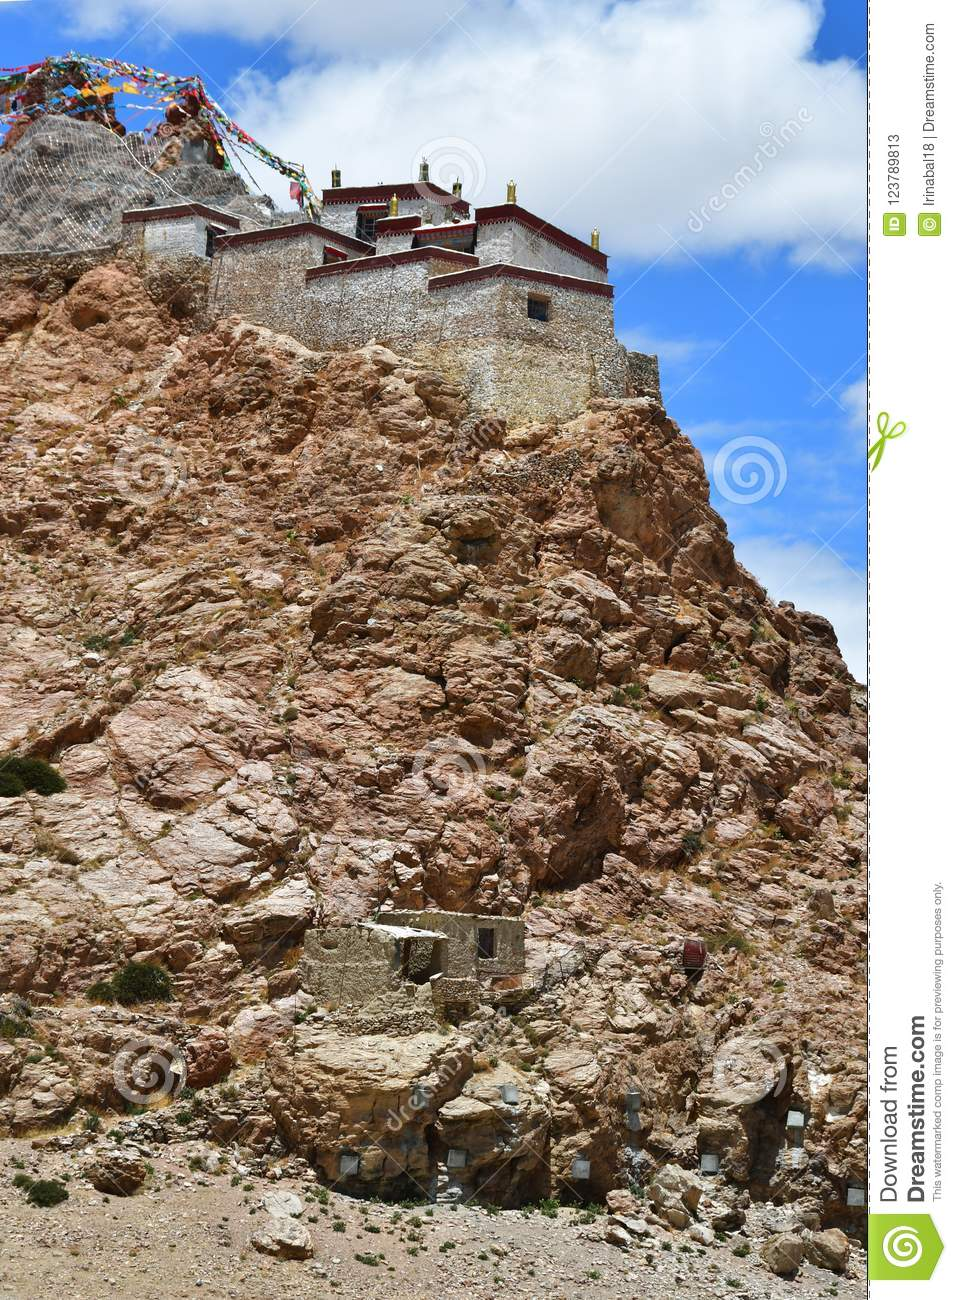 China, Tibet, Chiu Gompa monastery on the hill on the shore of lake Manasarovar